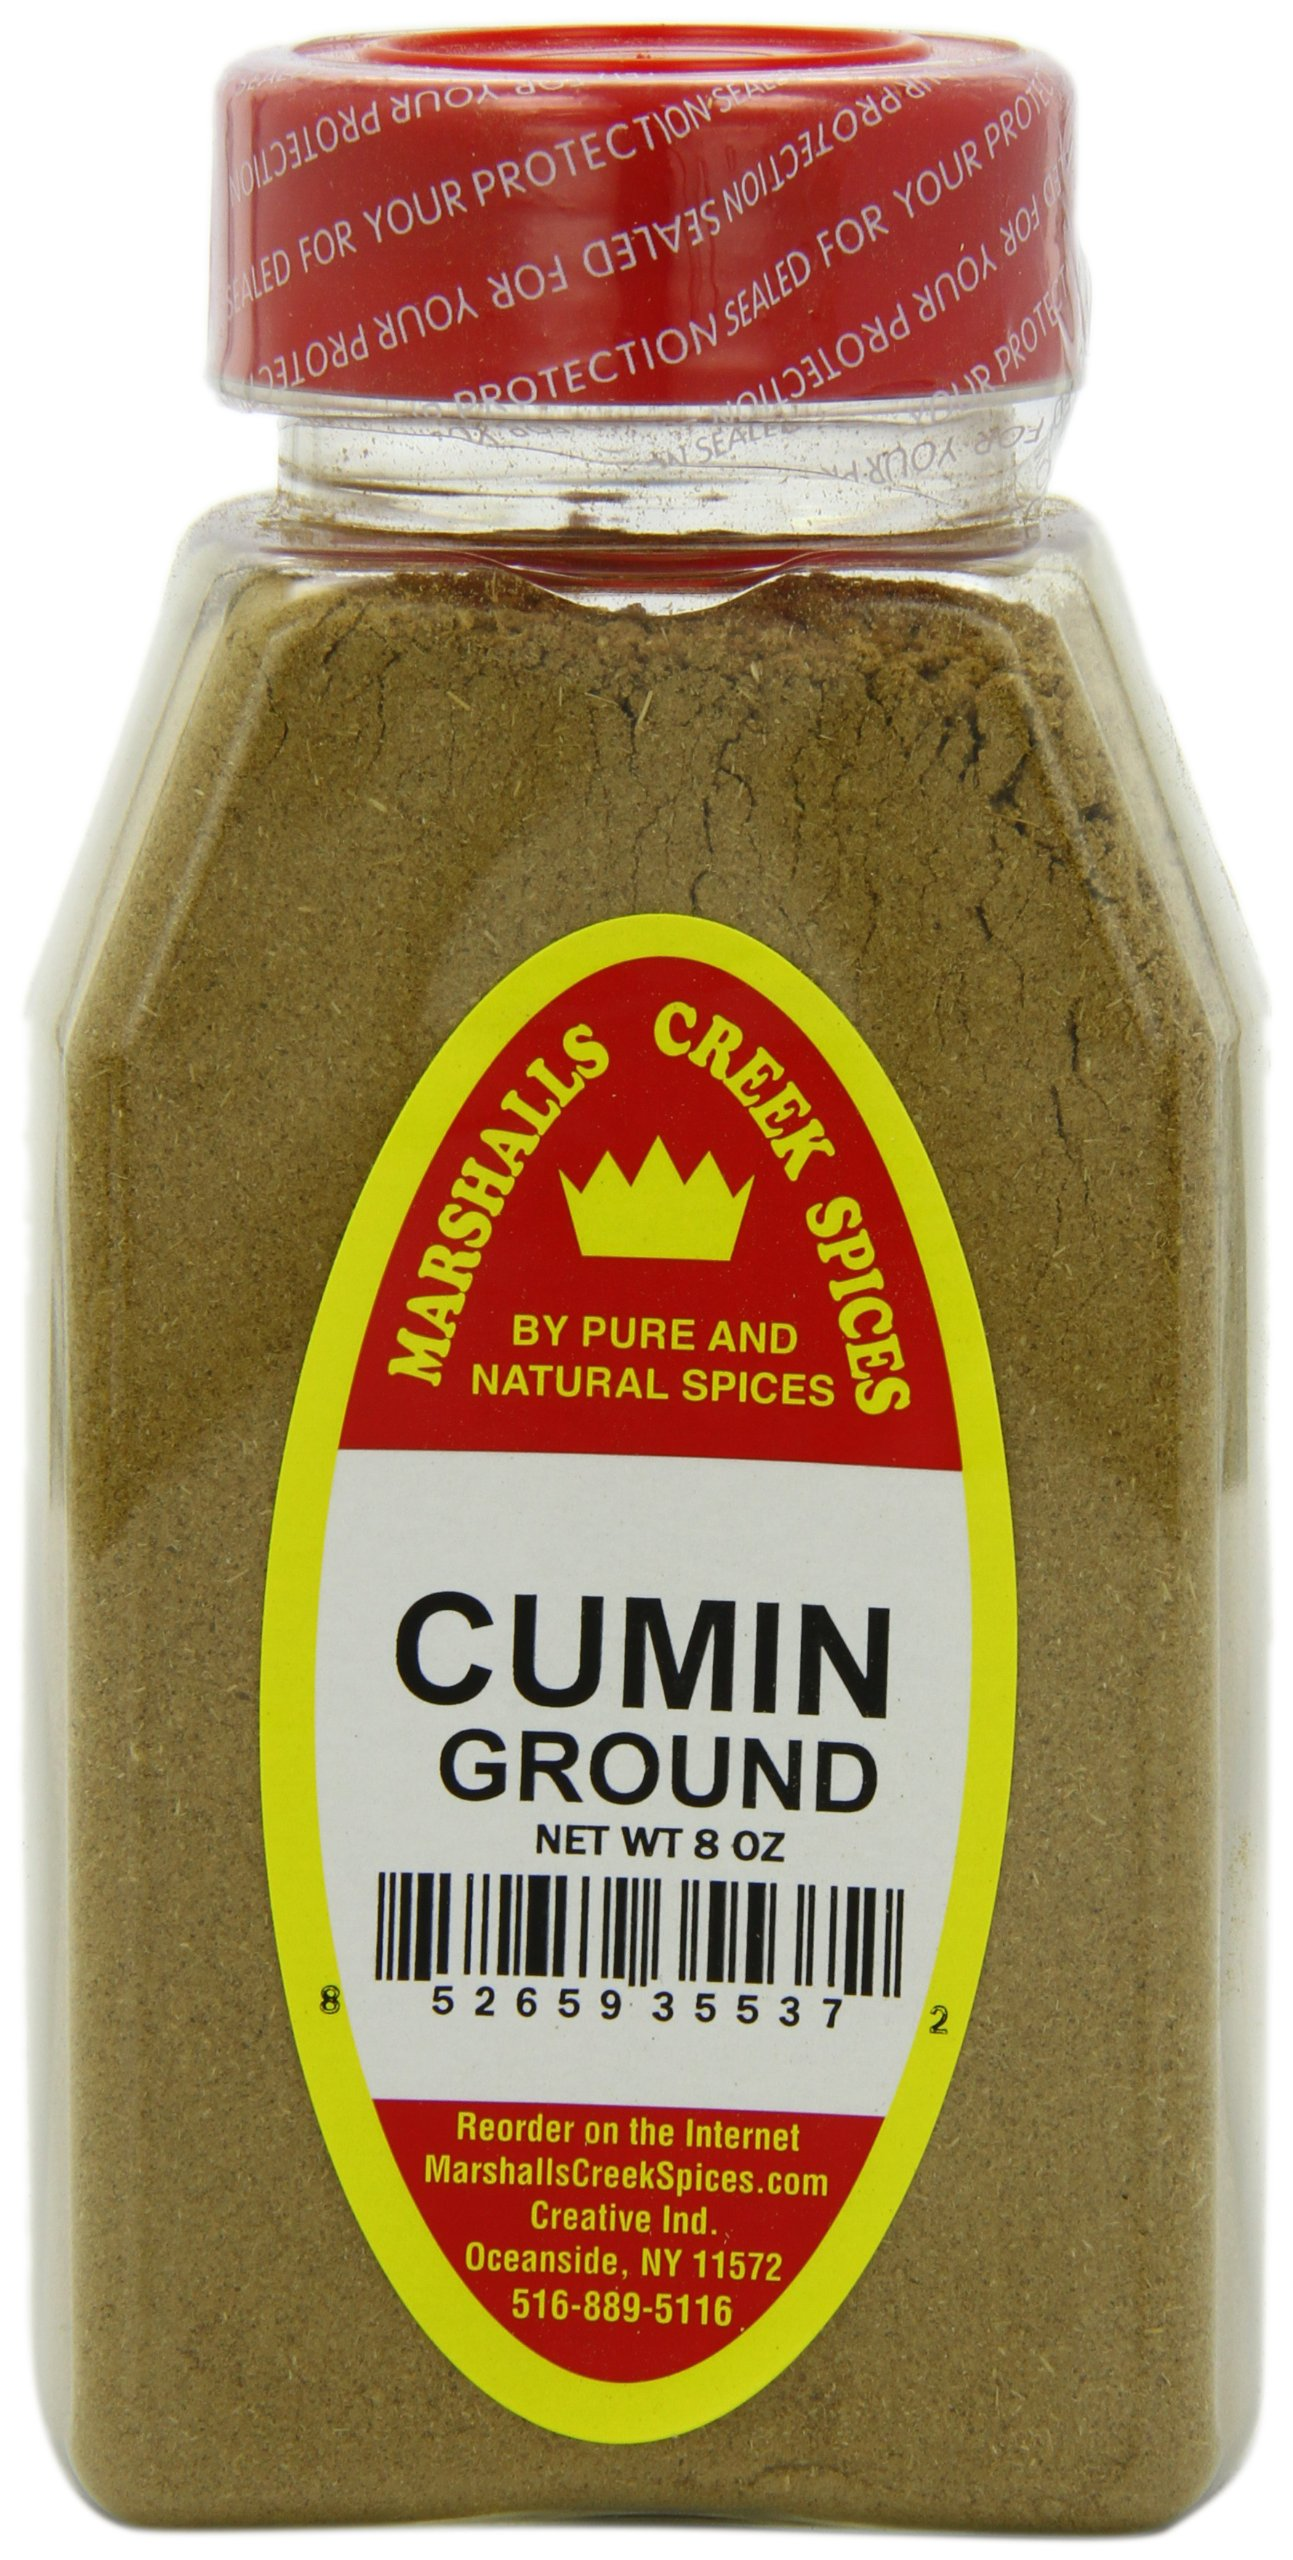 Marshalls Creek Spices Cumin Ground, 8 Ounce (Pack of 12)